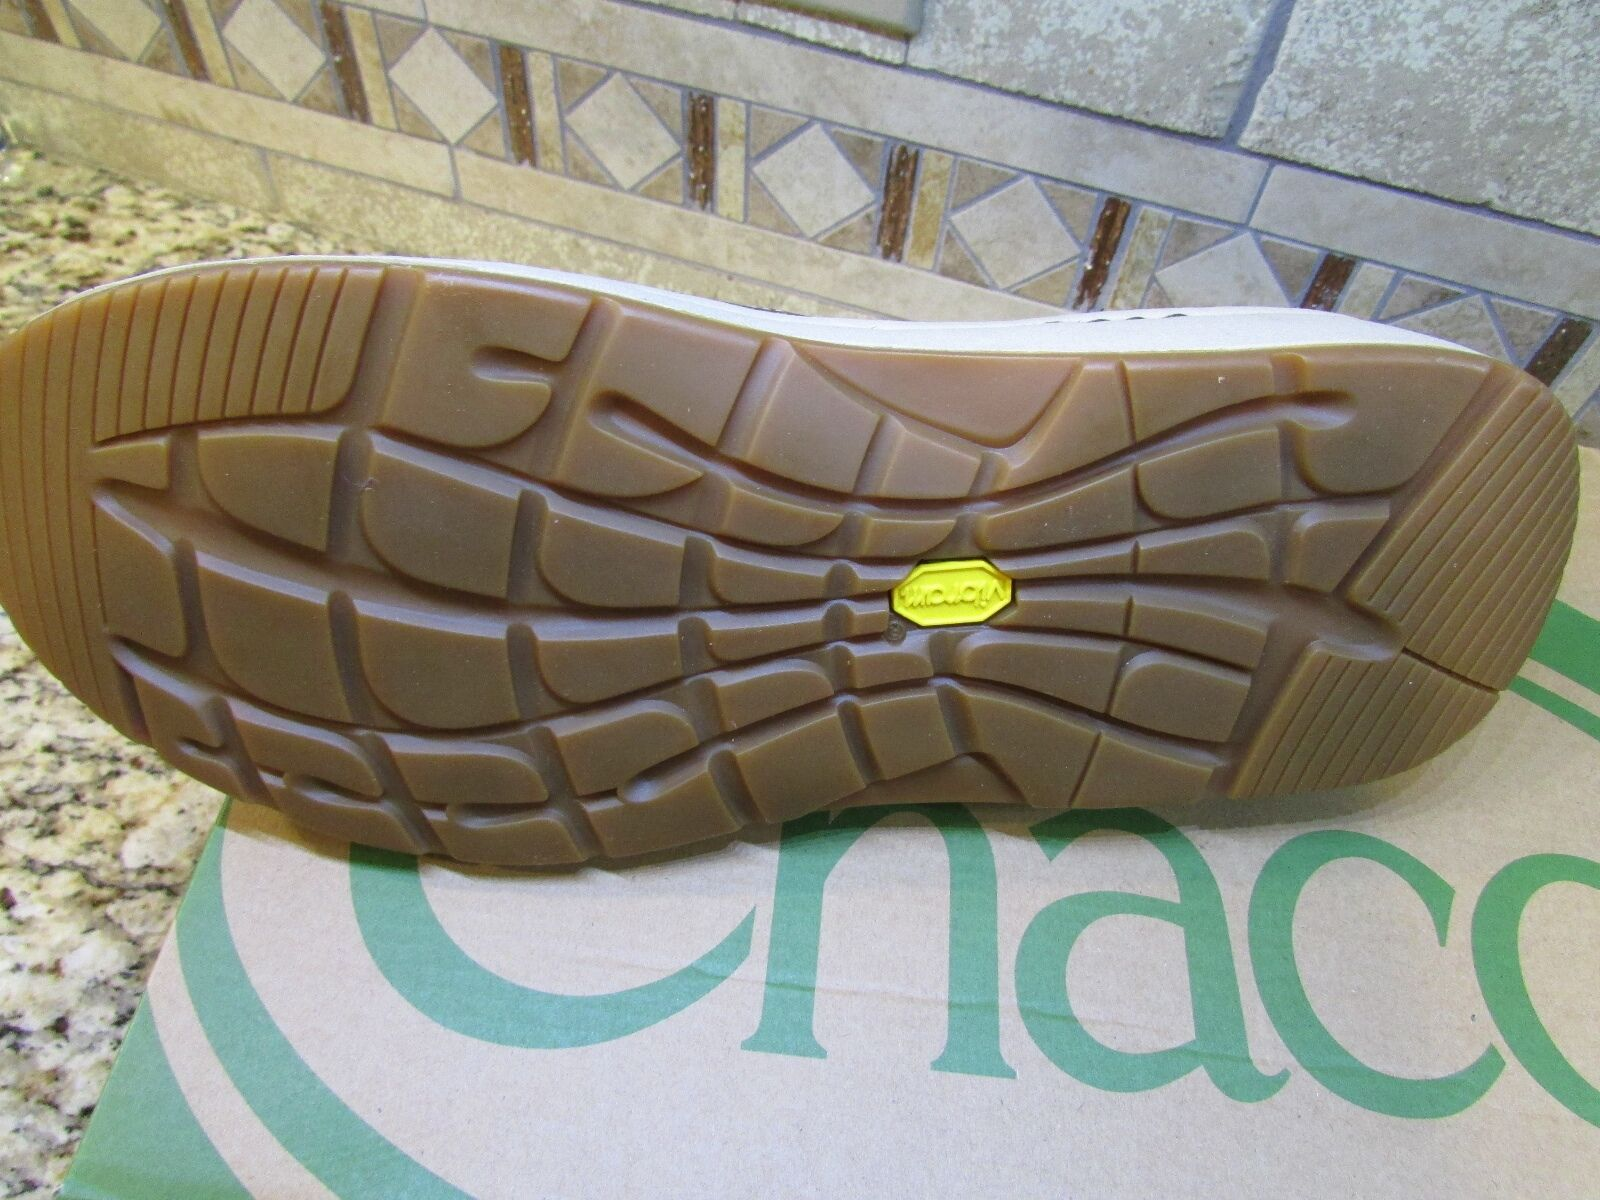 NEW CHACO LEATHER SLIP ON LOAFER Damenschuhe Schuhe Damenschuhe LOAFER 6.5 SHITAKE ZAAGH VIBRAM GUNNISON 0e4261